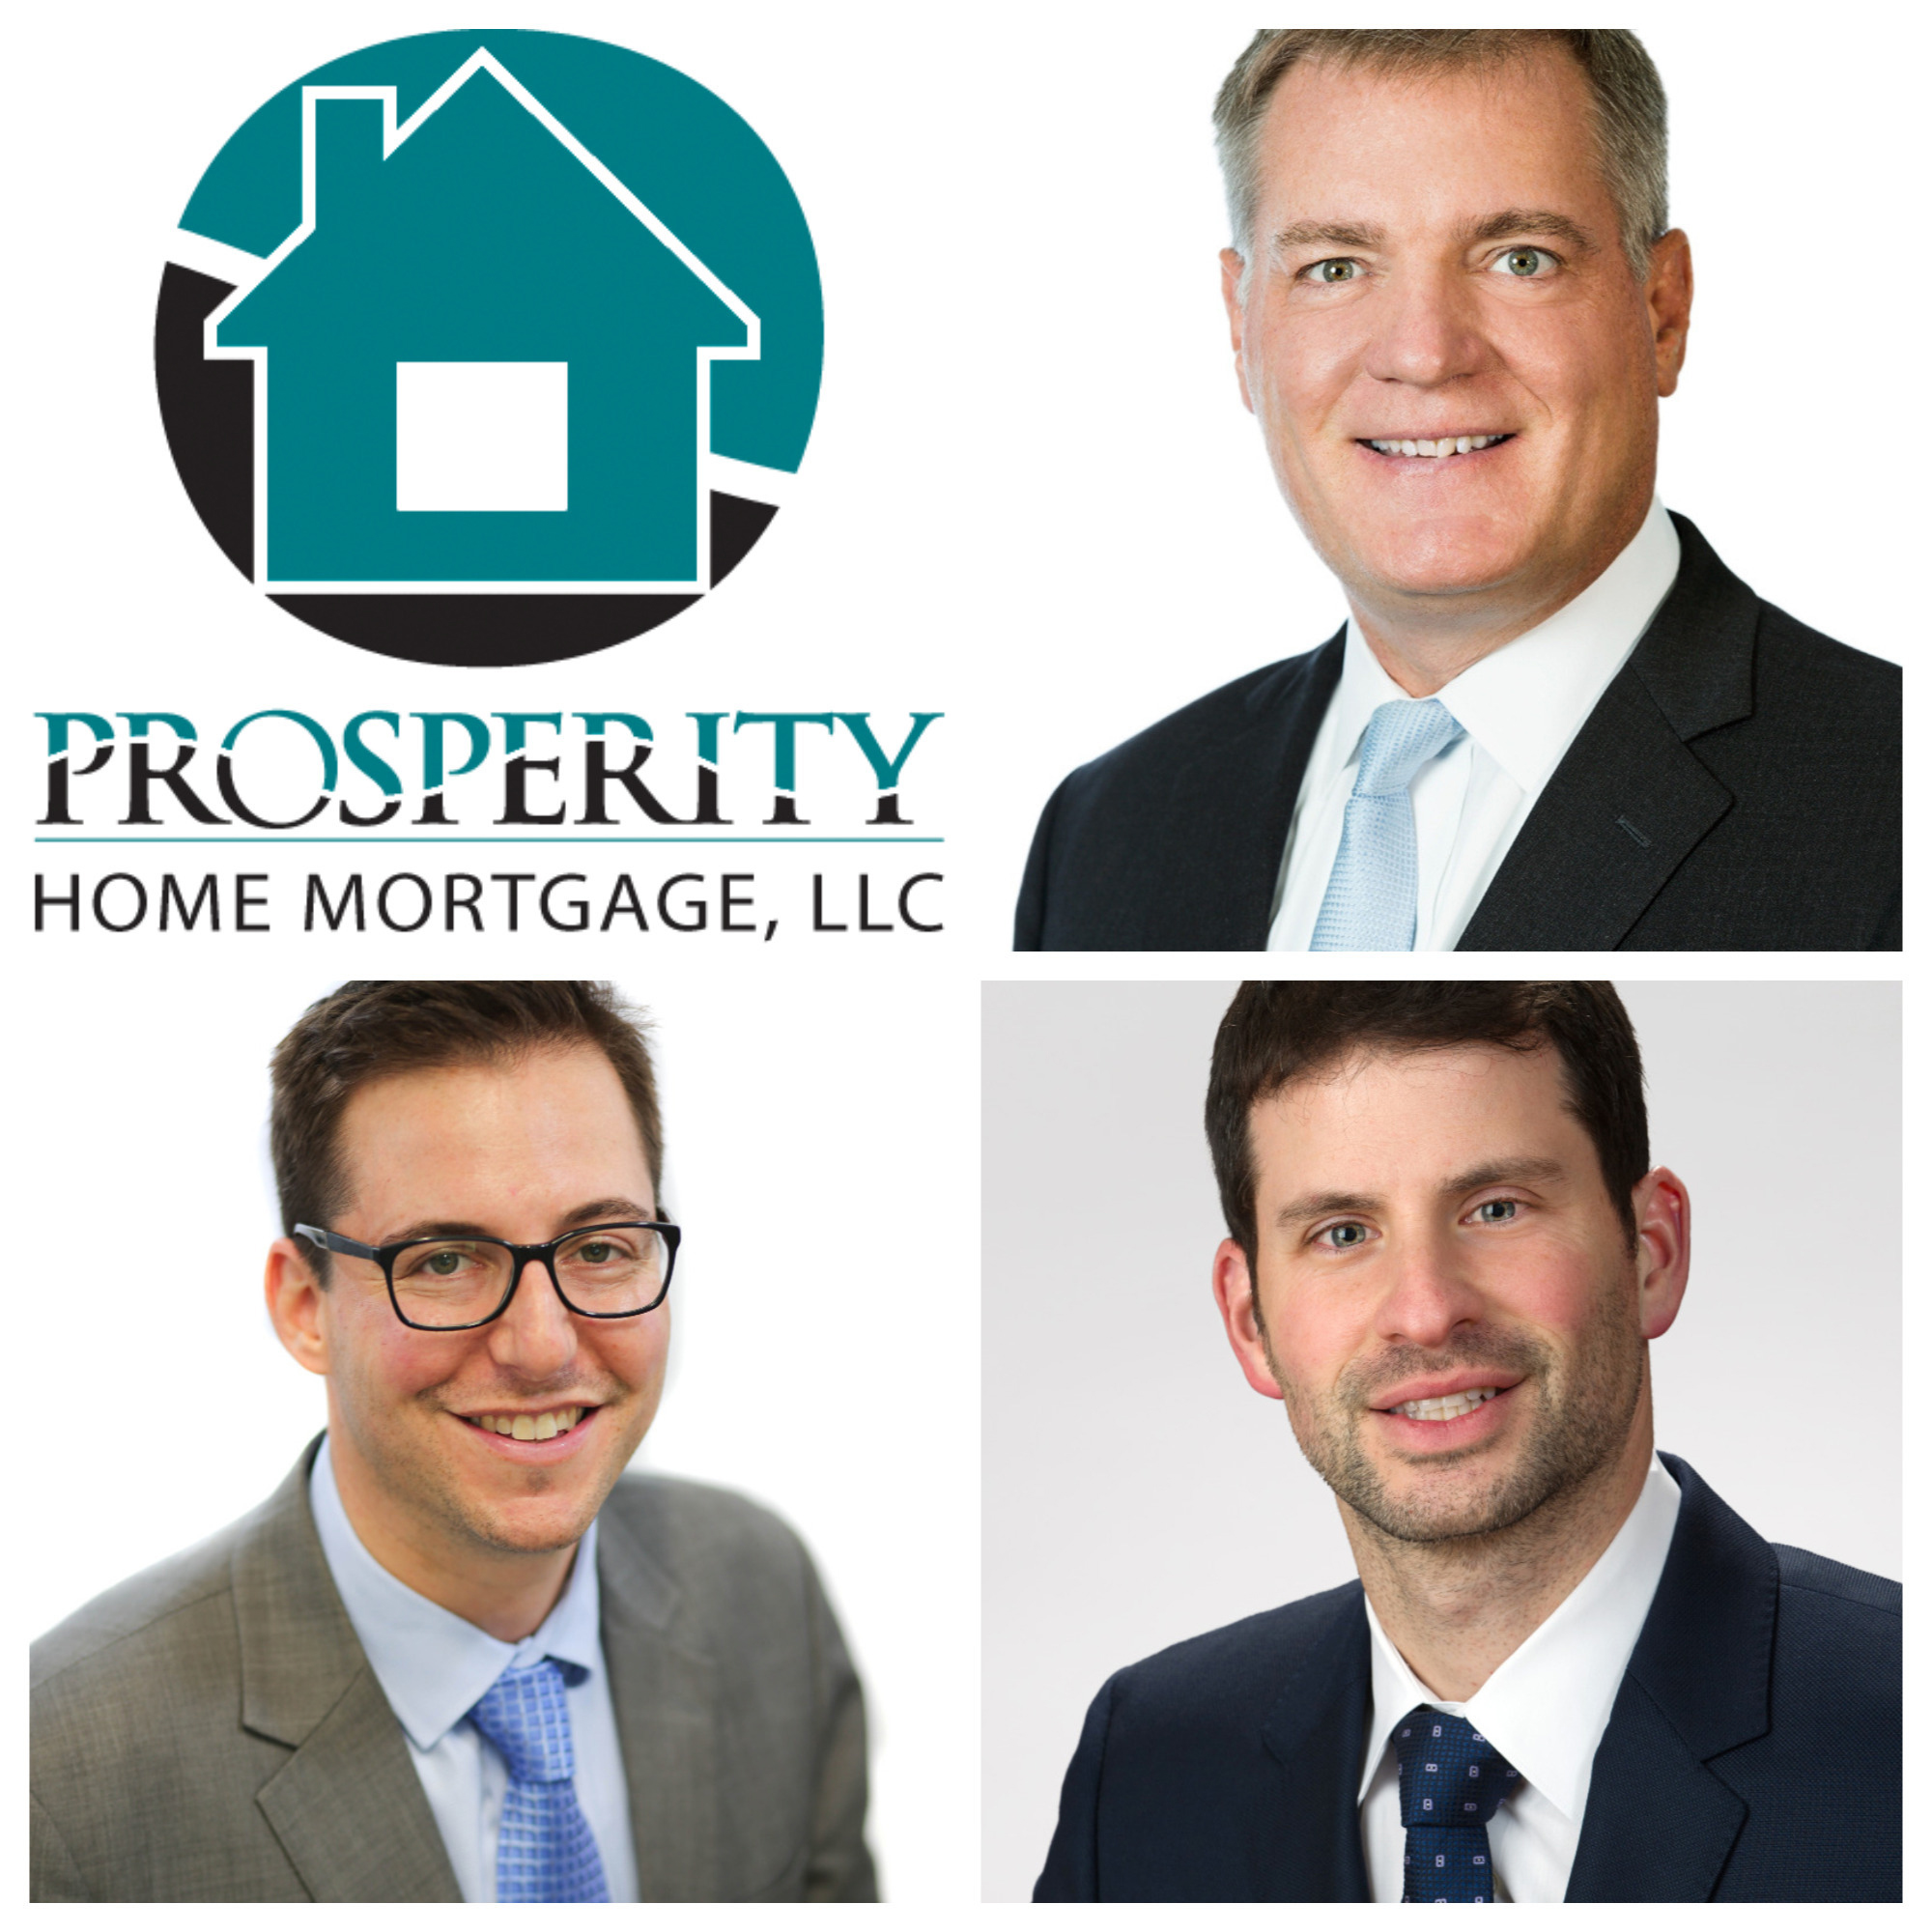 Clockwise, from top right, Thomas O'Keefe, Jody Eichenblatt and Jonathan Okun were named among the Top 200 Mortgage Originators in America.